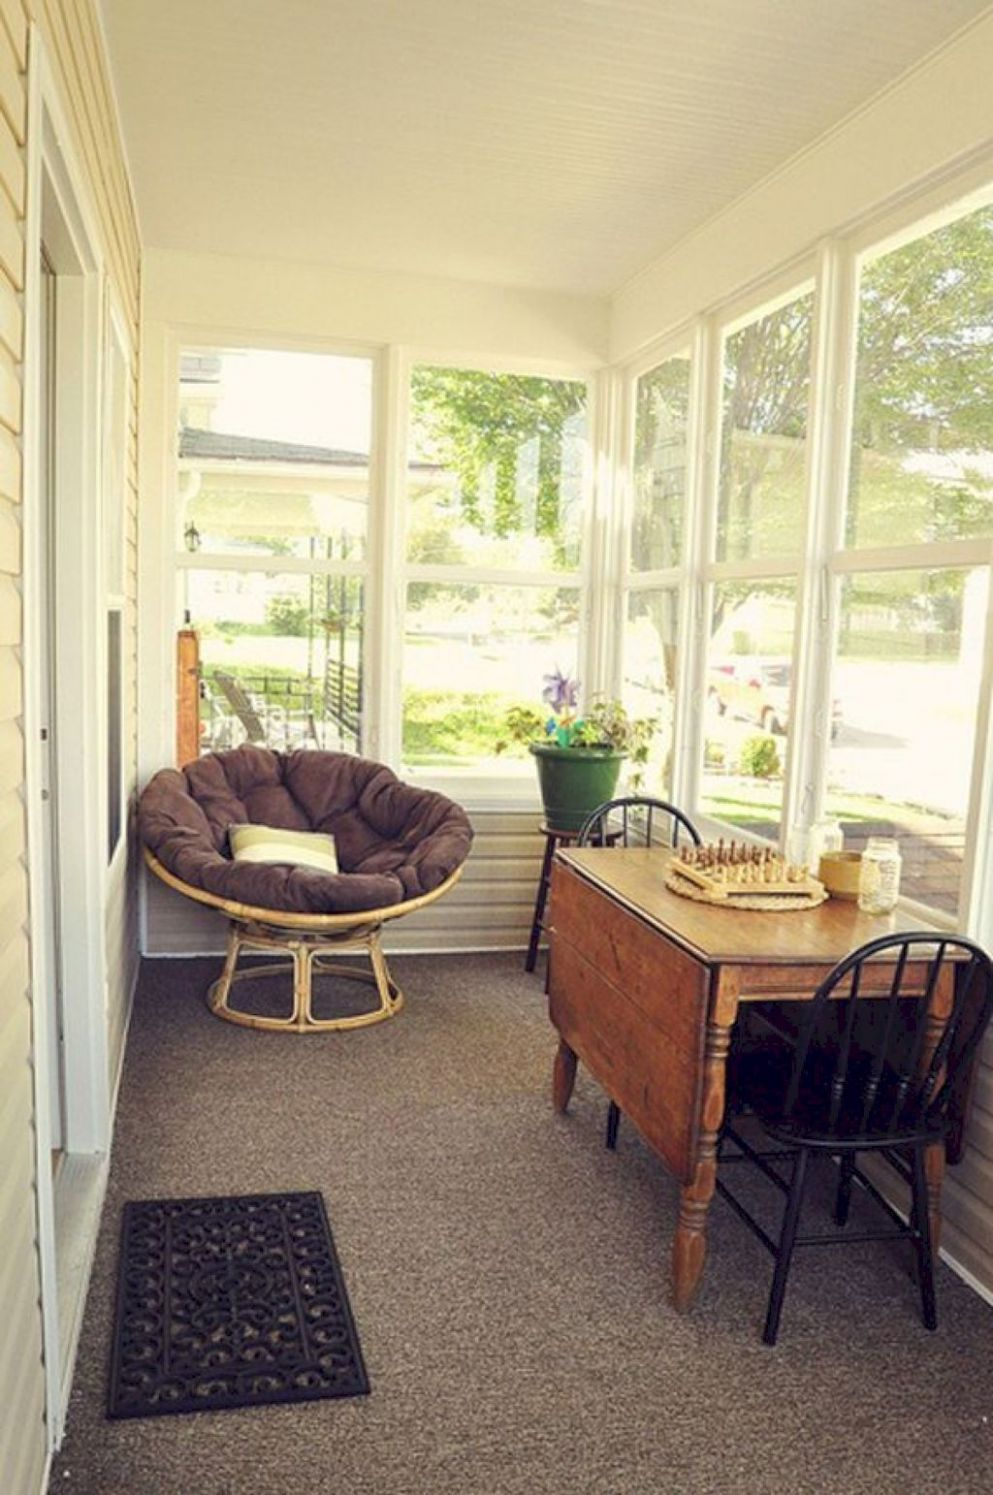 11 Comfy Farmhouse Sunroom Makeover Ideas (With images) | Sunroom ..